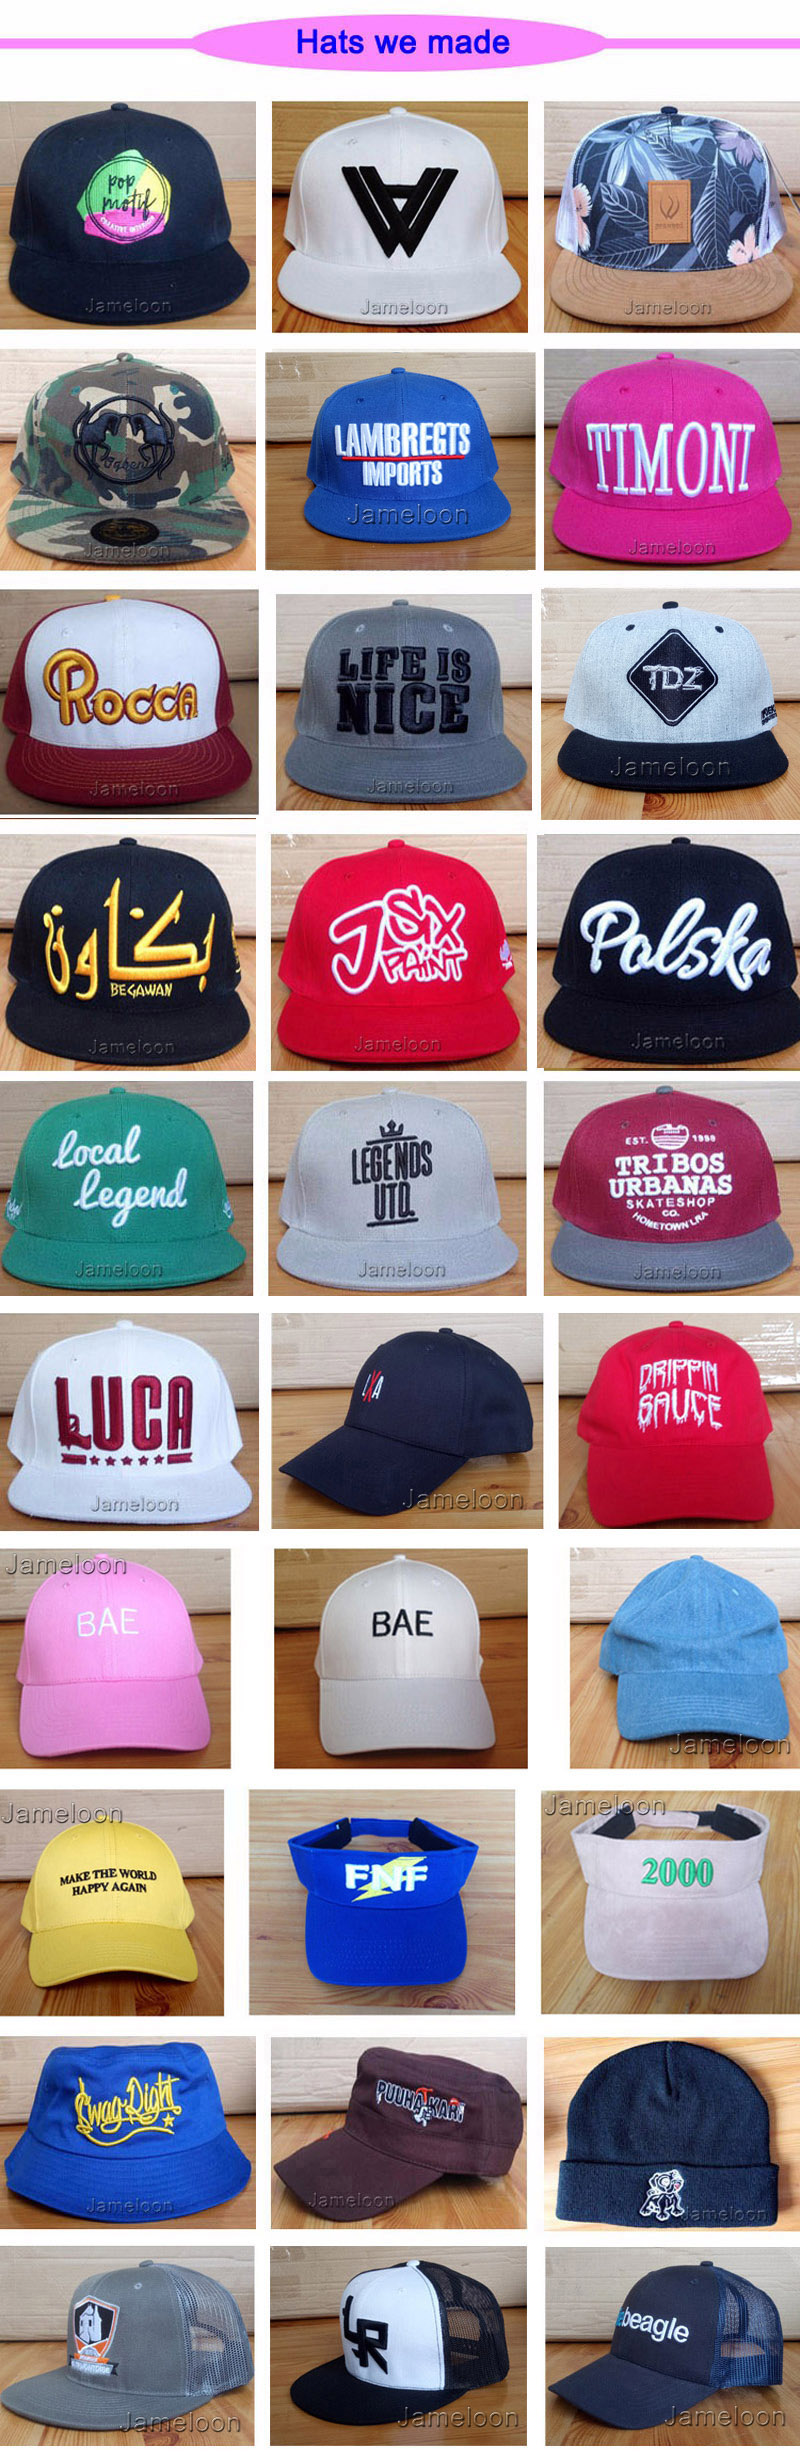 e2f227e5c5a Detail Feedback Questions about factory wholesale! custom cap ...